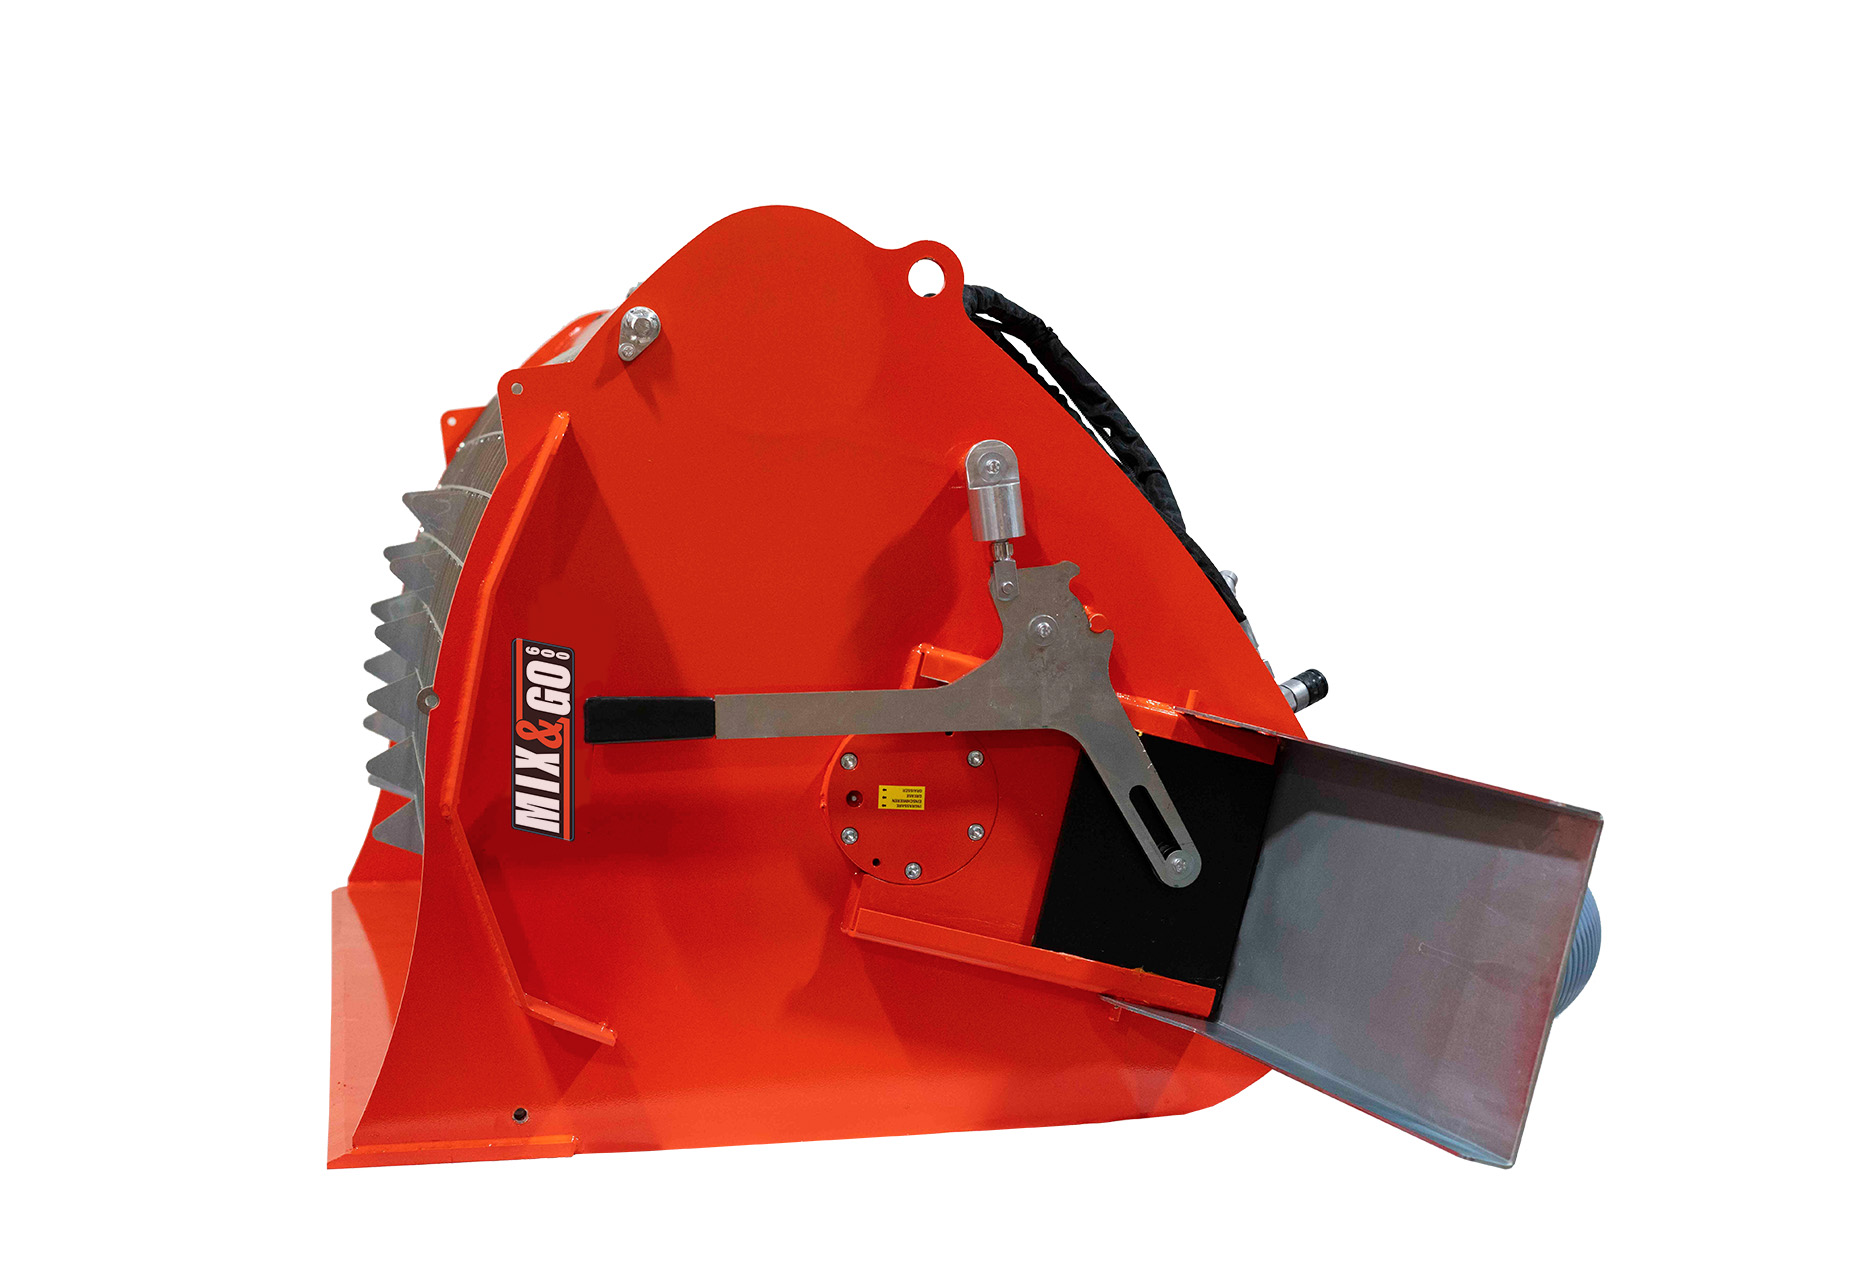 Manual side chute on the bmx-600 skid steer concrete mixer attachment.